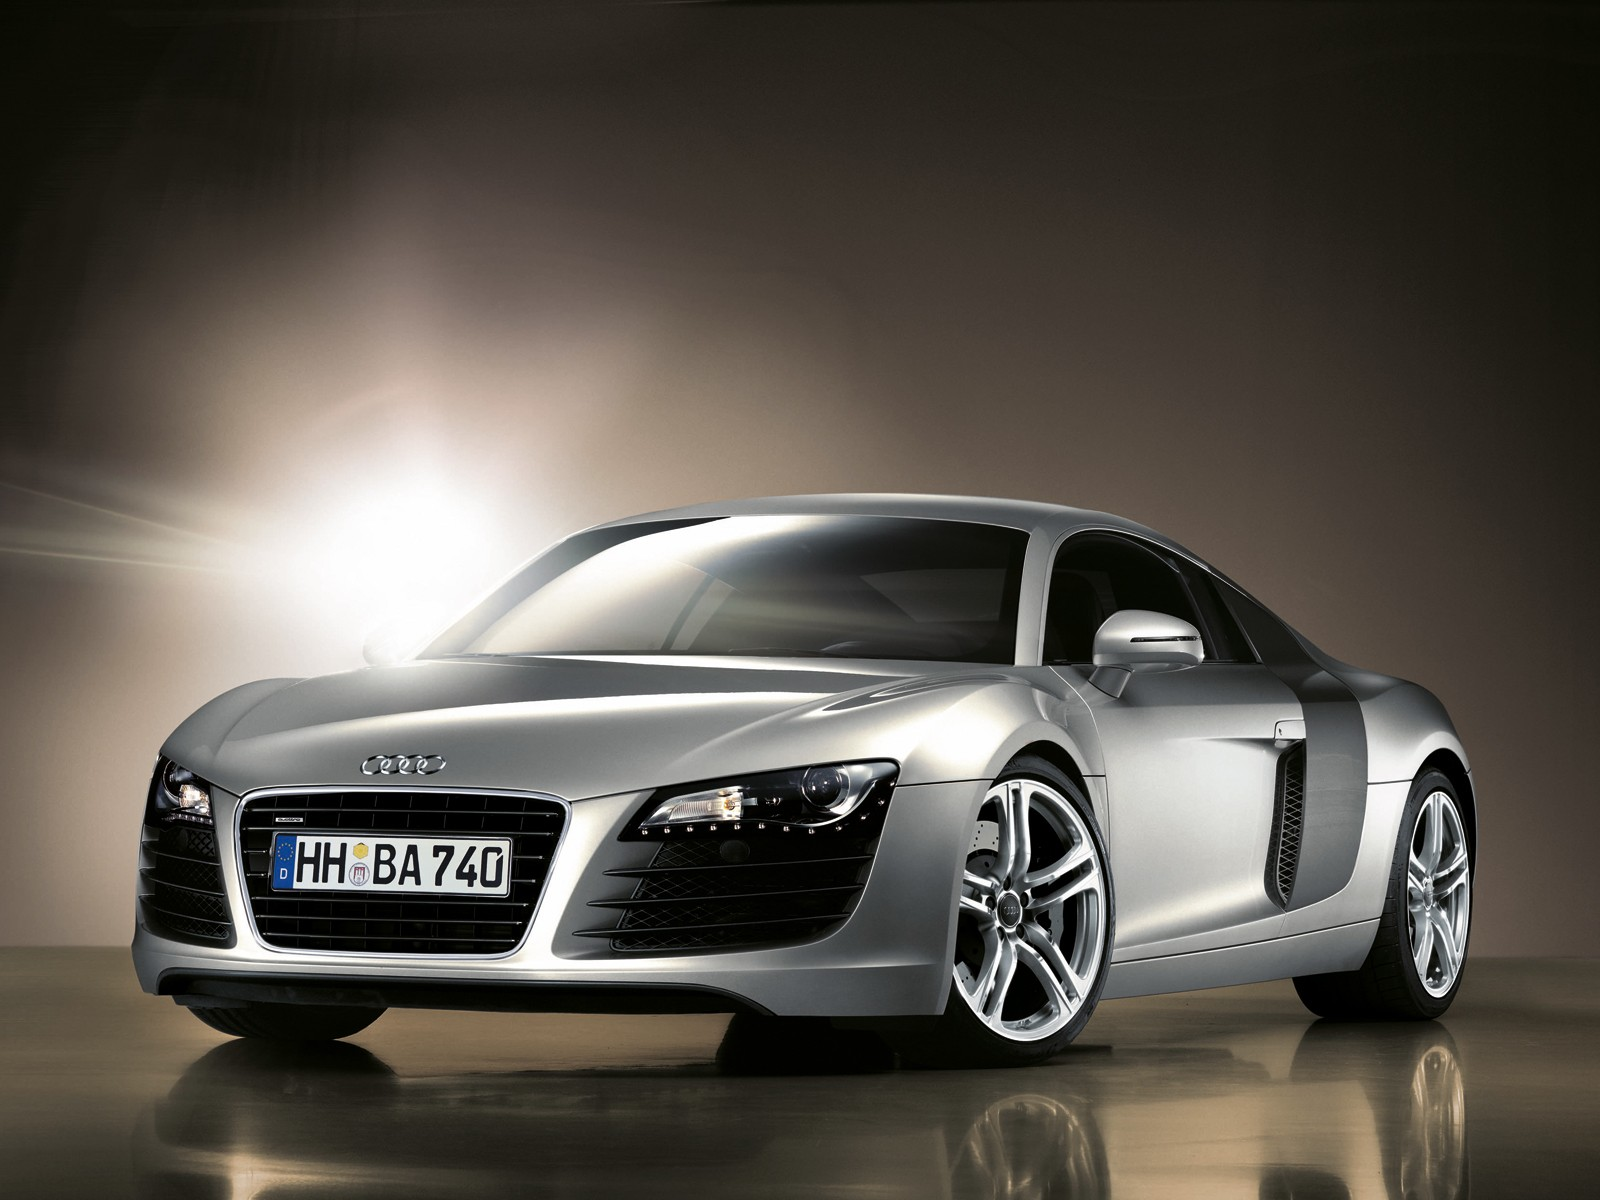 Audi R8 001 Hd Exotic Car Wallpapers